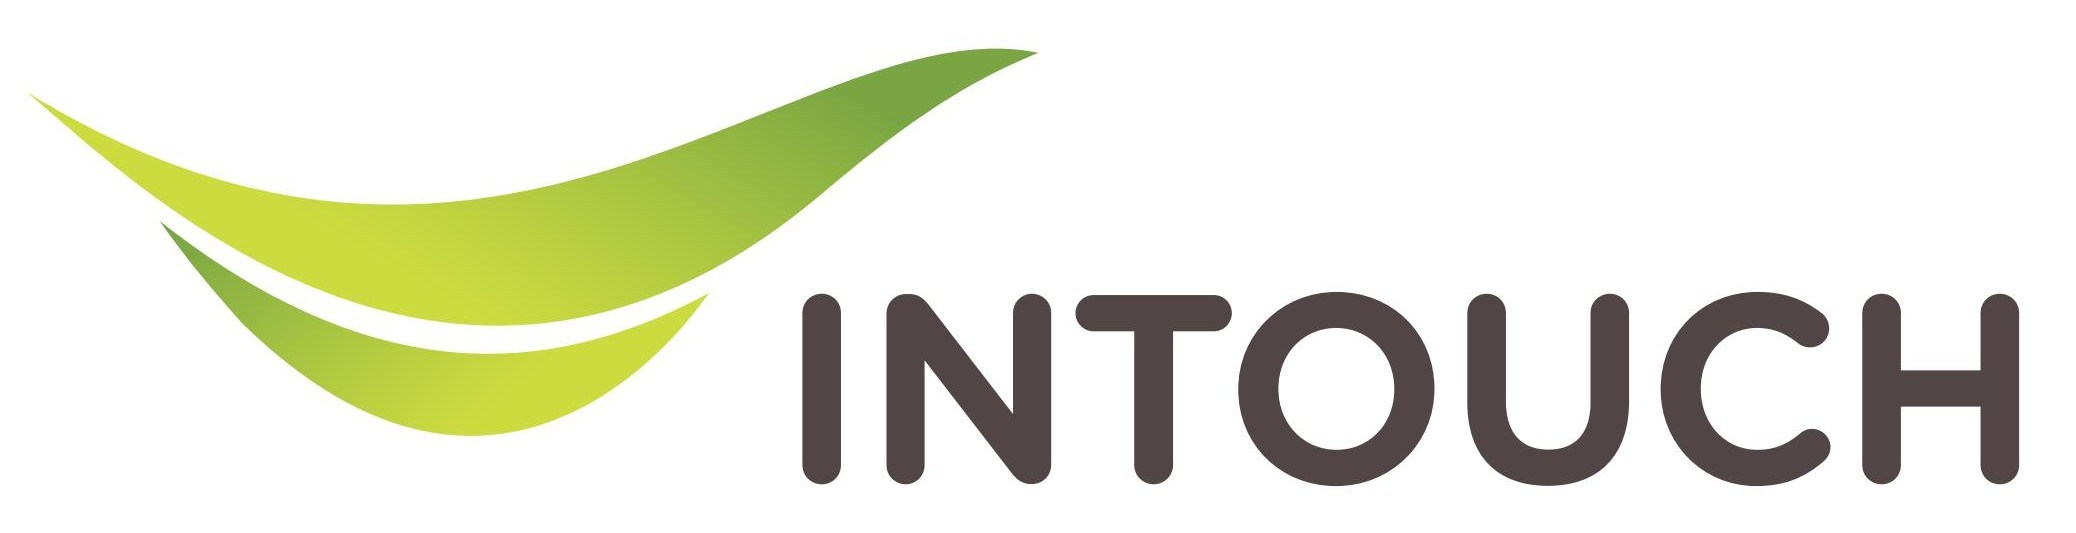 Intouch   Shin Corporation Logo [EPS File] png